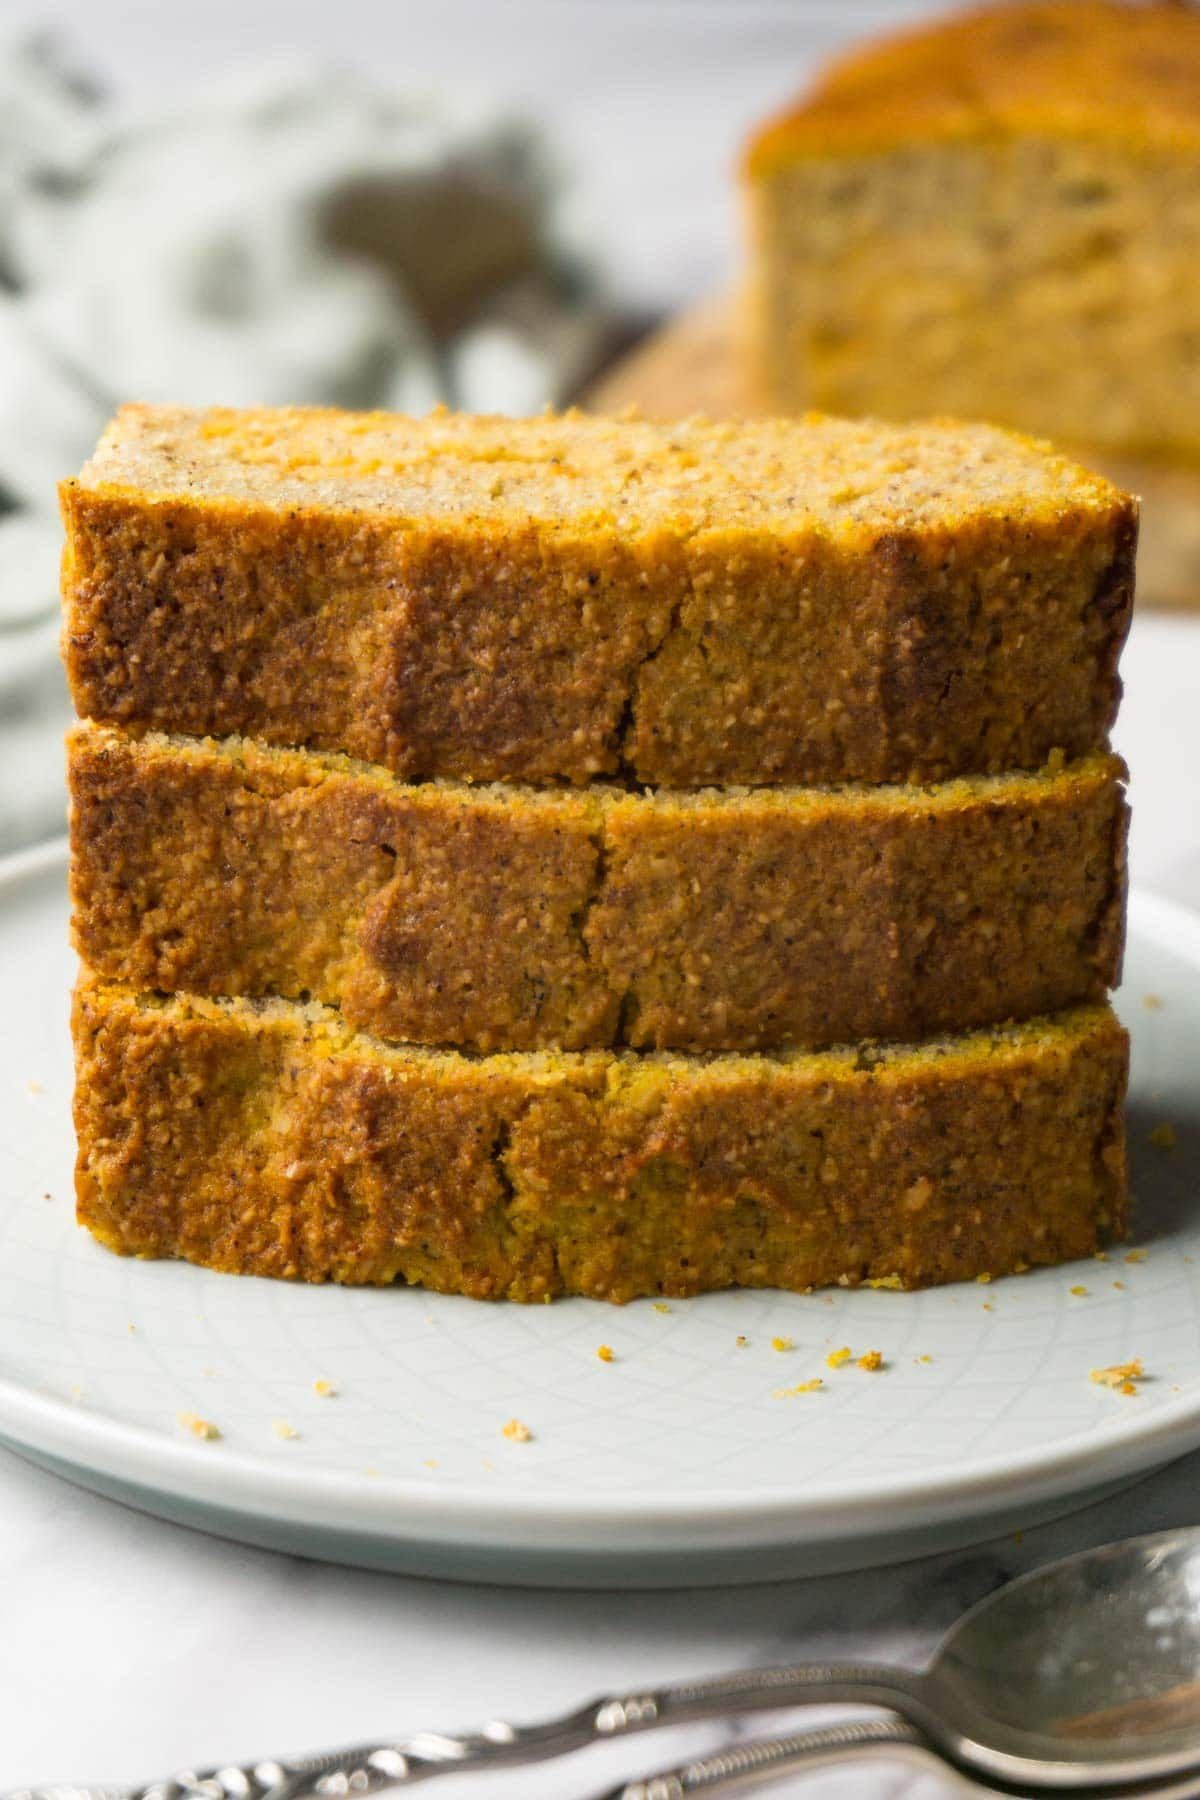 Three slices of gluten-free pumpkin bread stacked on top of each other, served on a small round plate.